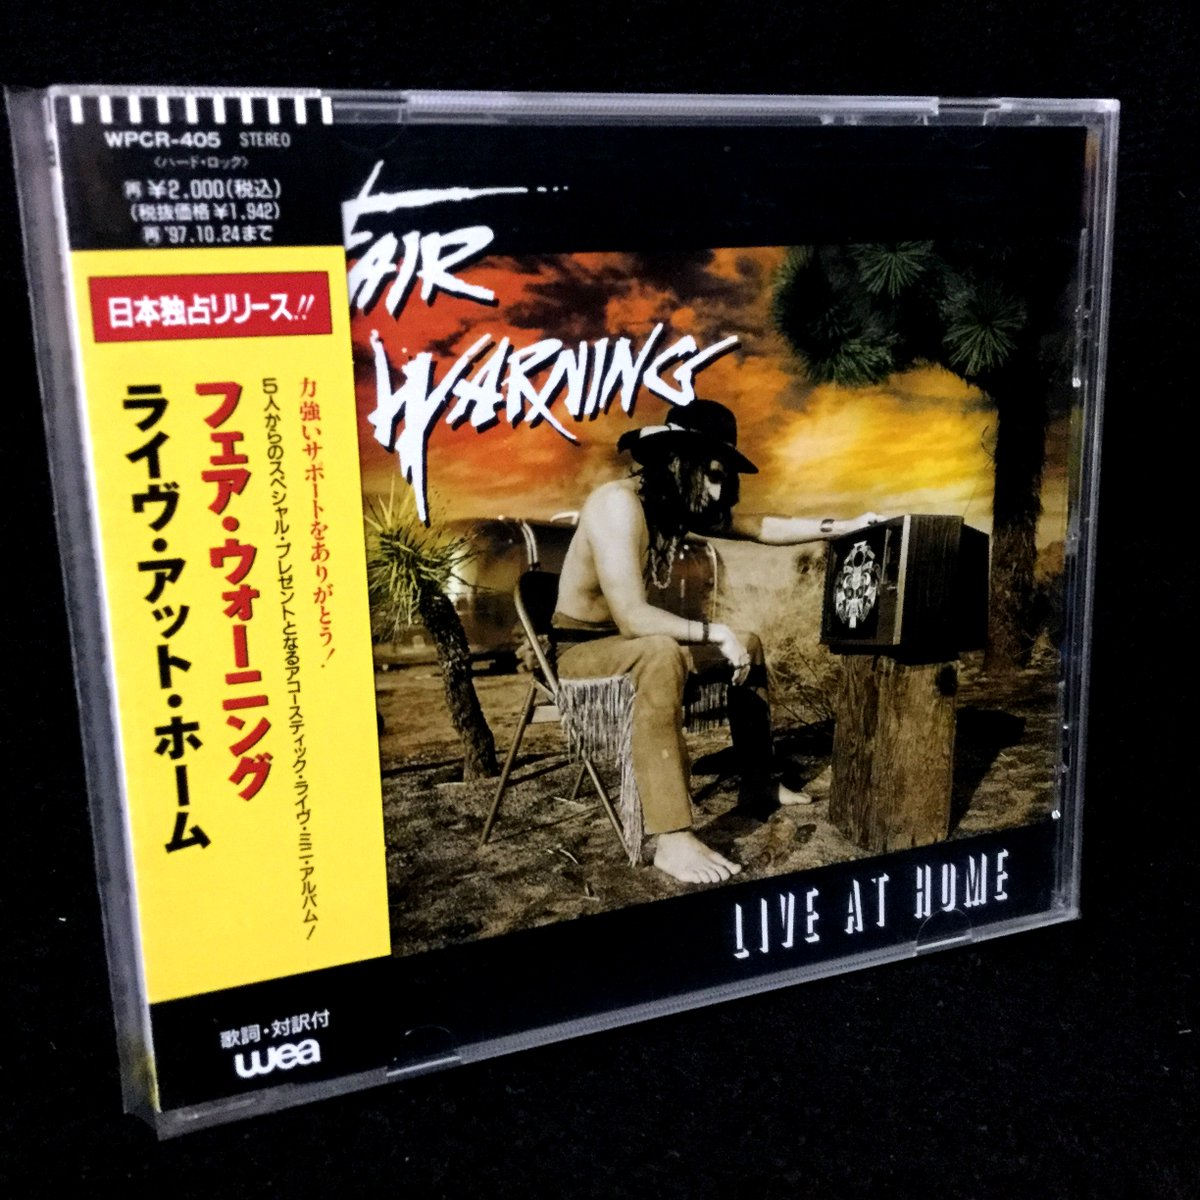 25th ANNIVERSARY!!!!!!!!!!!!!!!!!!!!!!!!!!!!!!! FAIR WARNING / Live At Home [October 25th, 1995 JAPAN] https://t.co/LywZFQJh1H